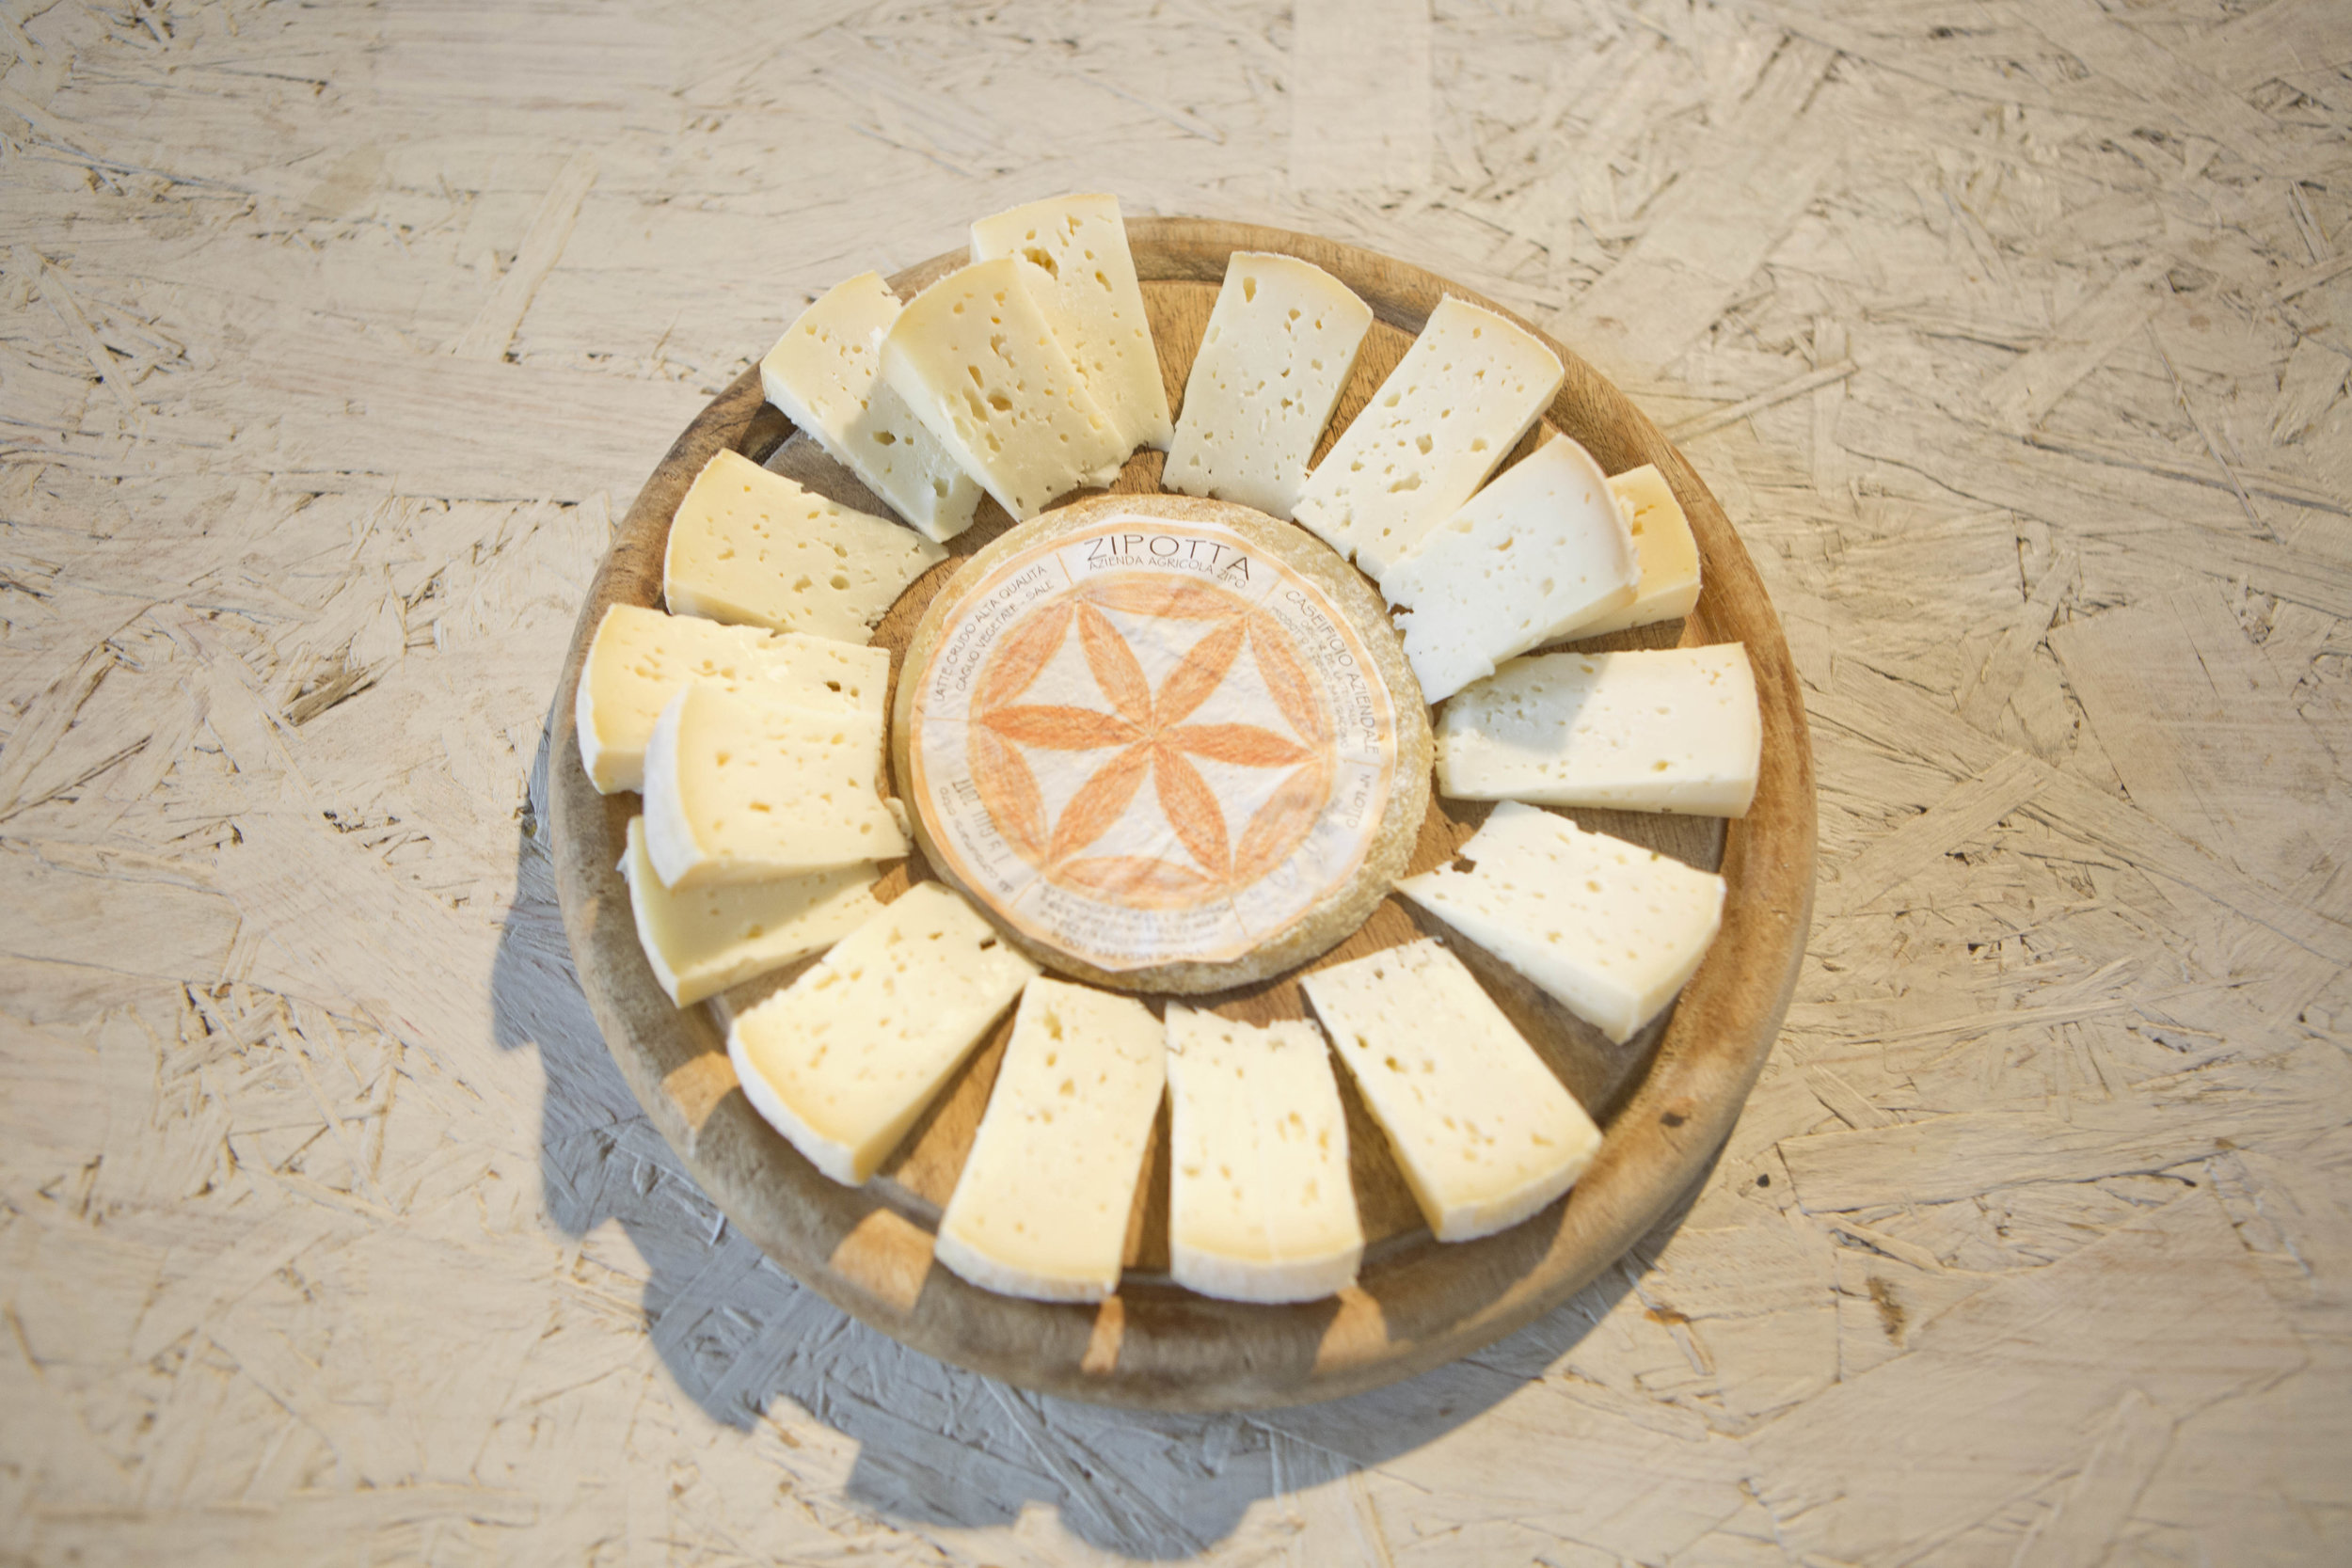 Zipo - Doing Italy - cheese cut into pieces.JPG